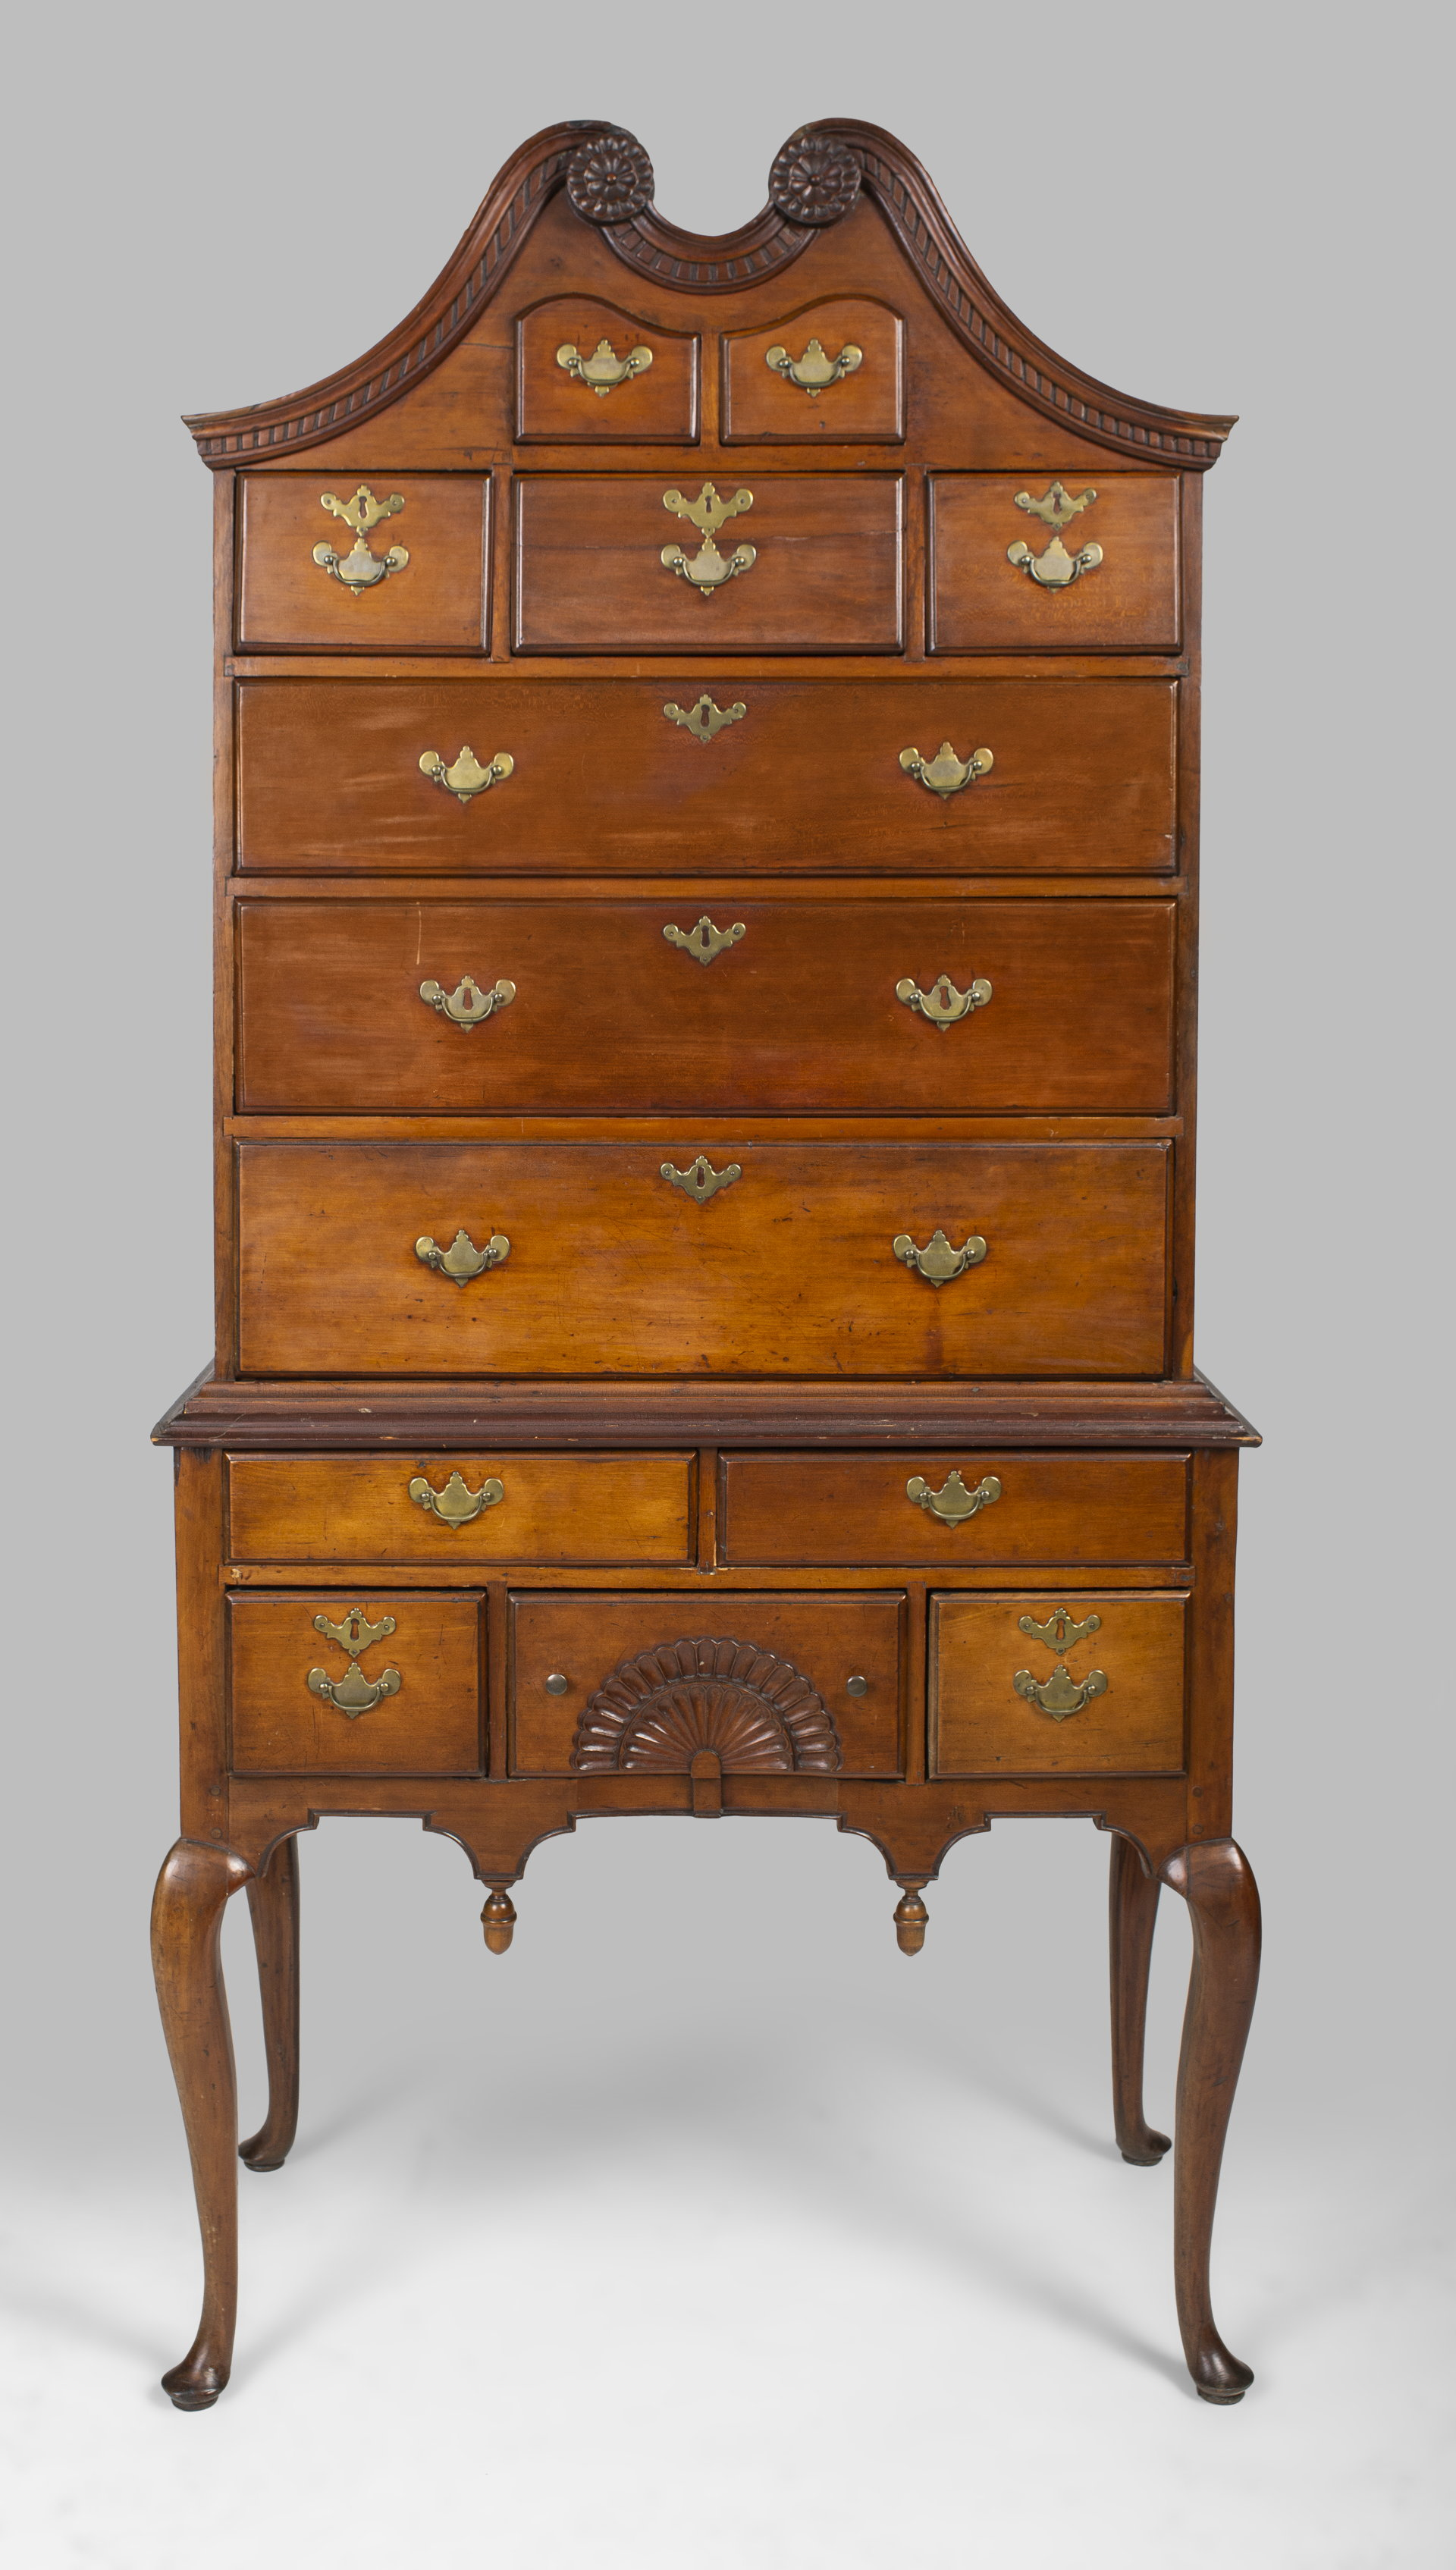 A fine country Queen Anne high chest